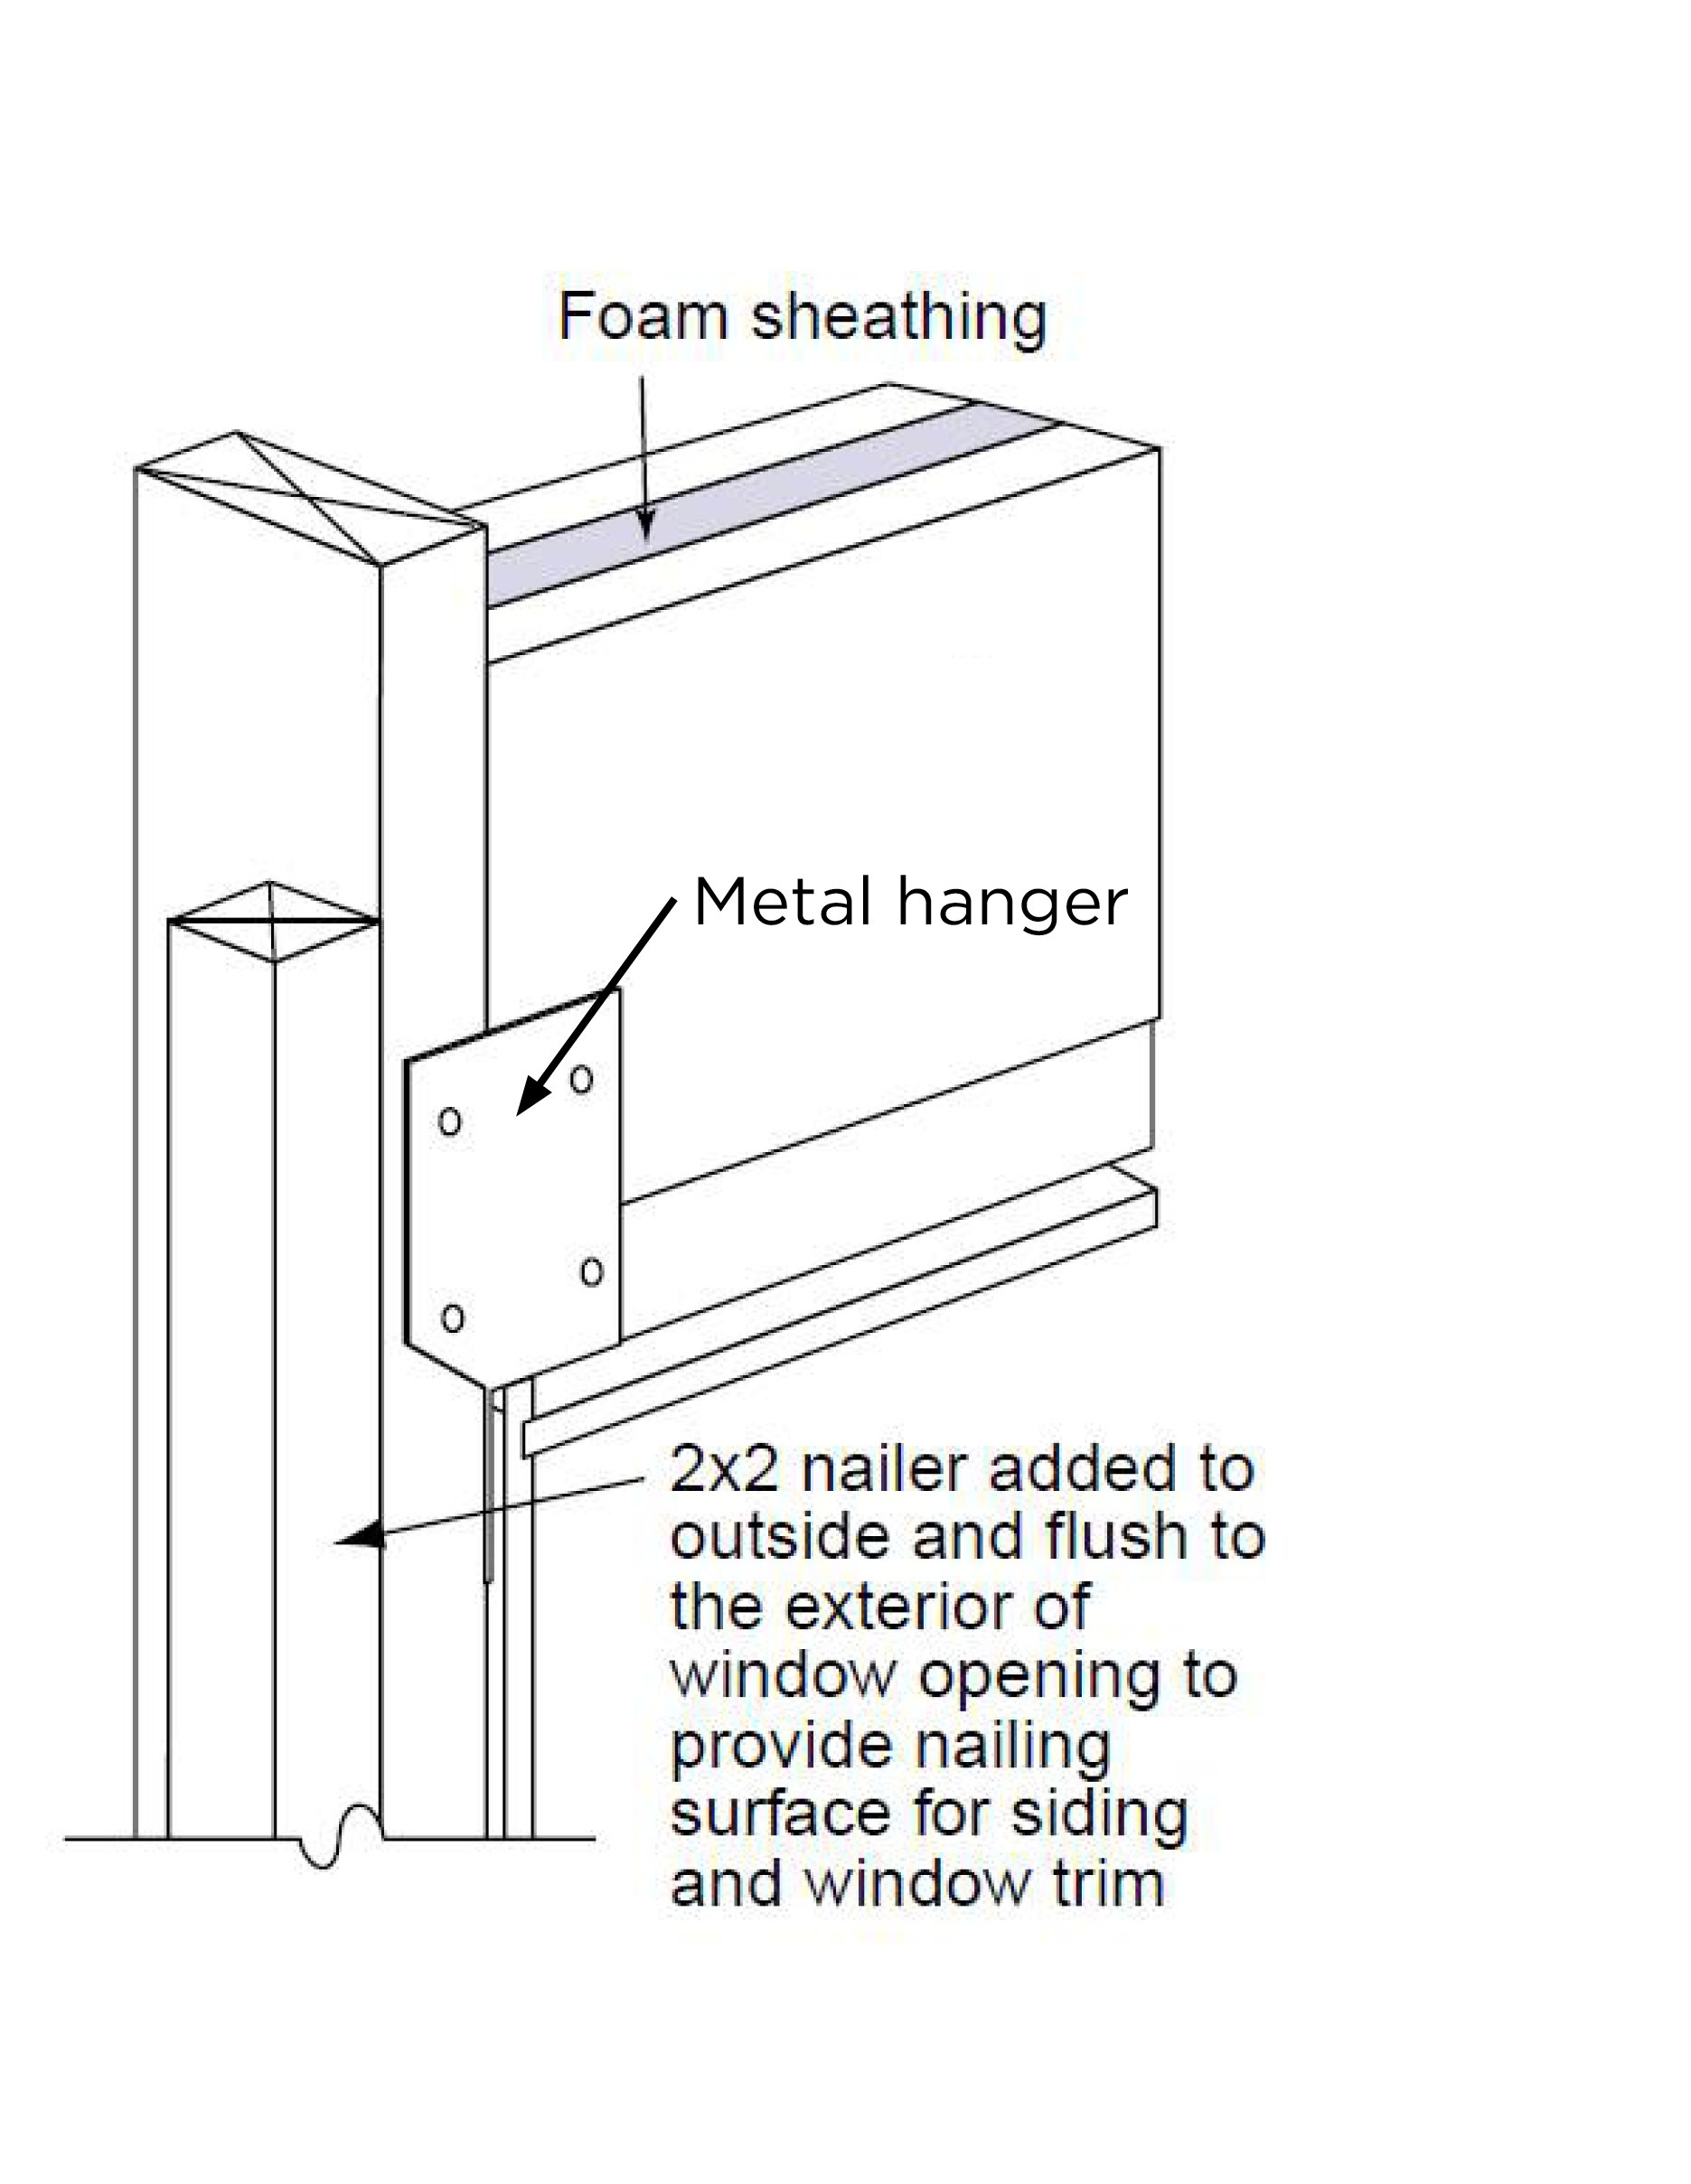 Insulated headers can be hung with metal hangers instead of jack studs to reduce lumber usage